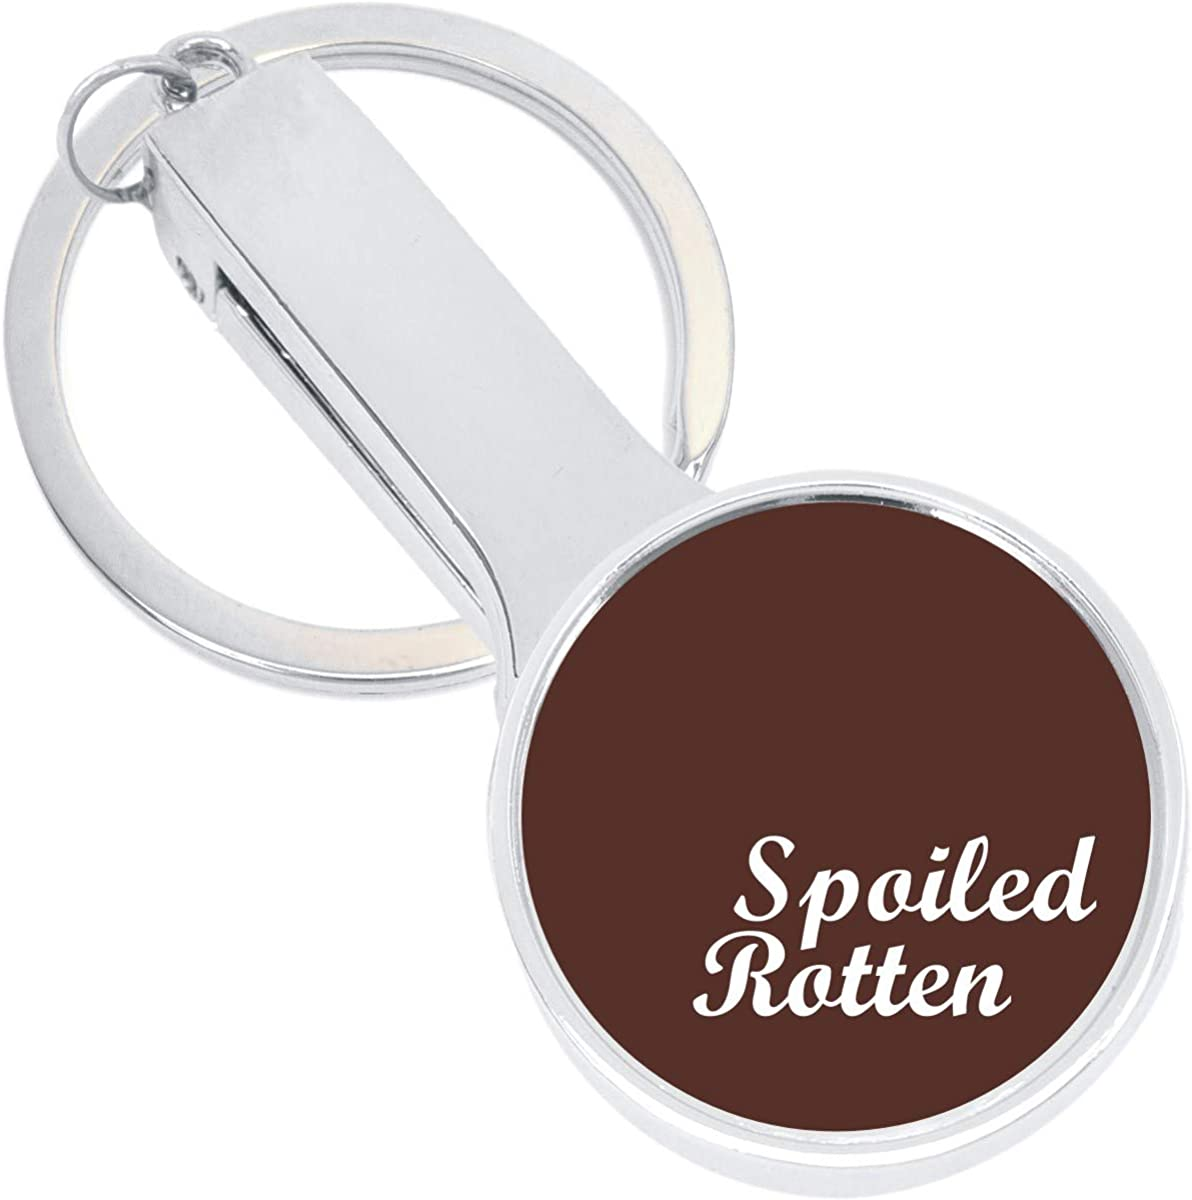 Spoiled Rotten Classic Purse Hanger and Pouch